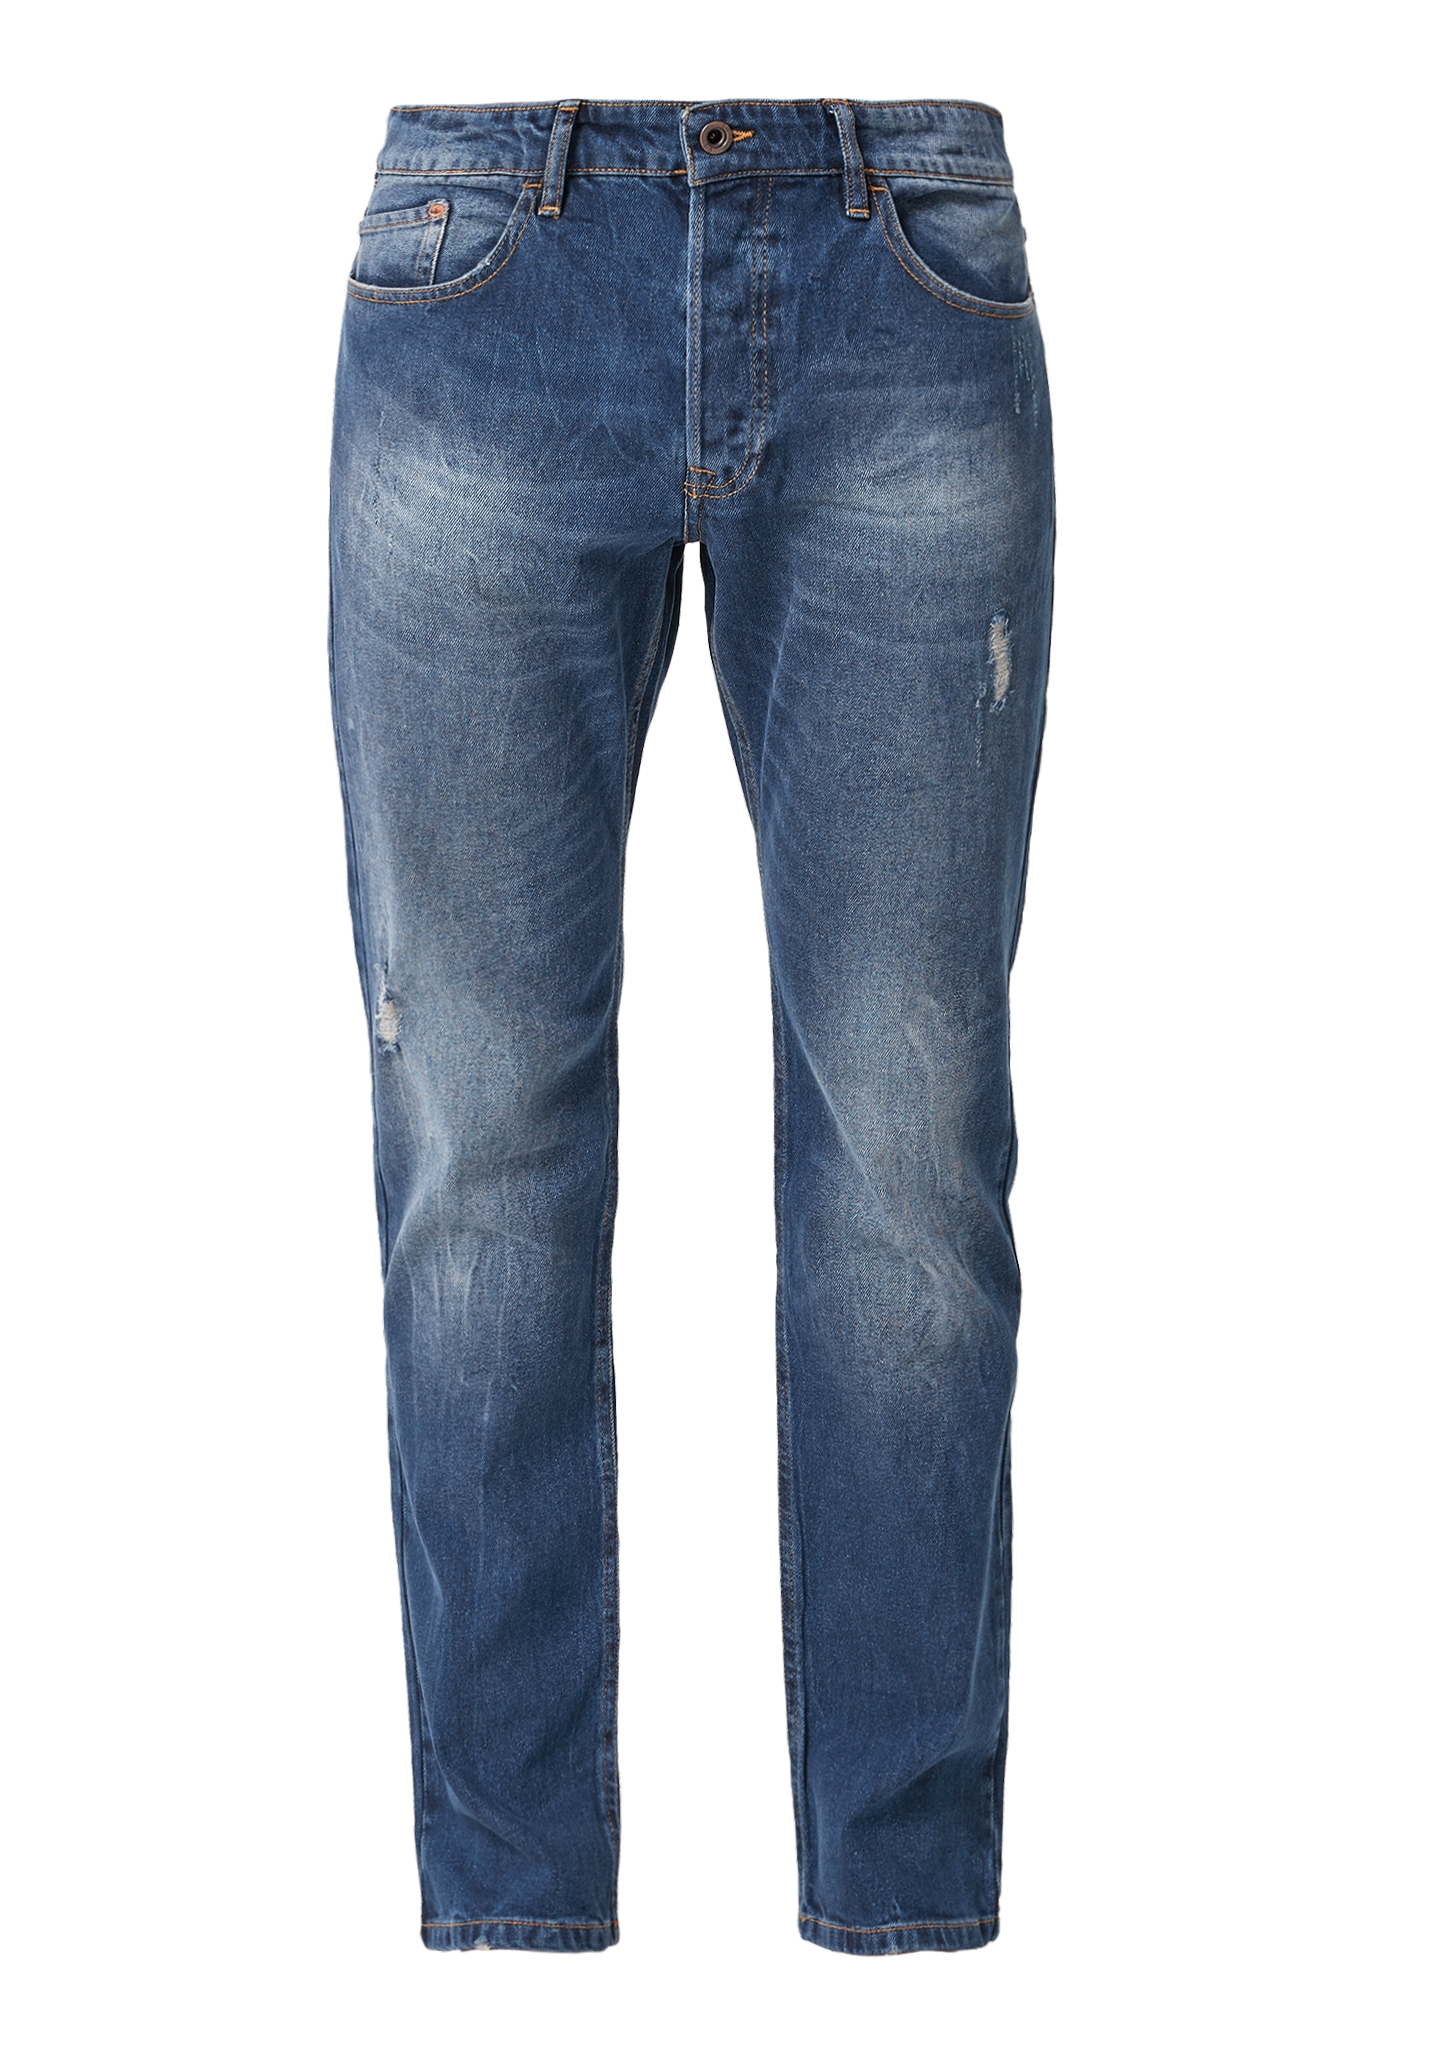 Stretchjeans   Bekleidung > Jeans   Blau   64% lyocell -  35% baumwolle -  1% elasthan   Q/S designed by